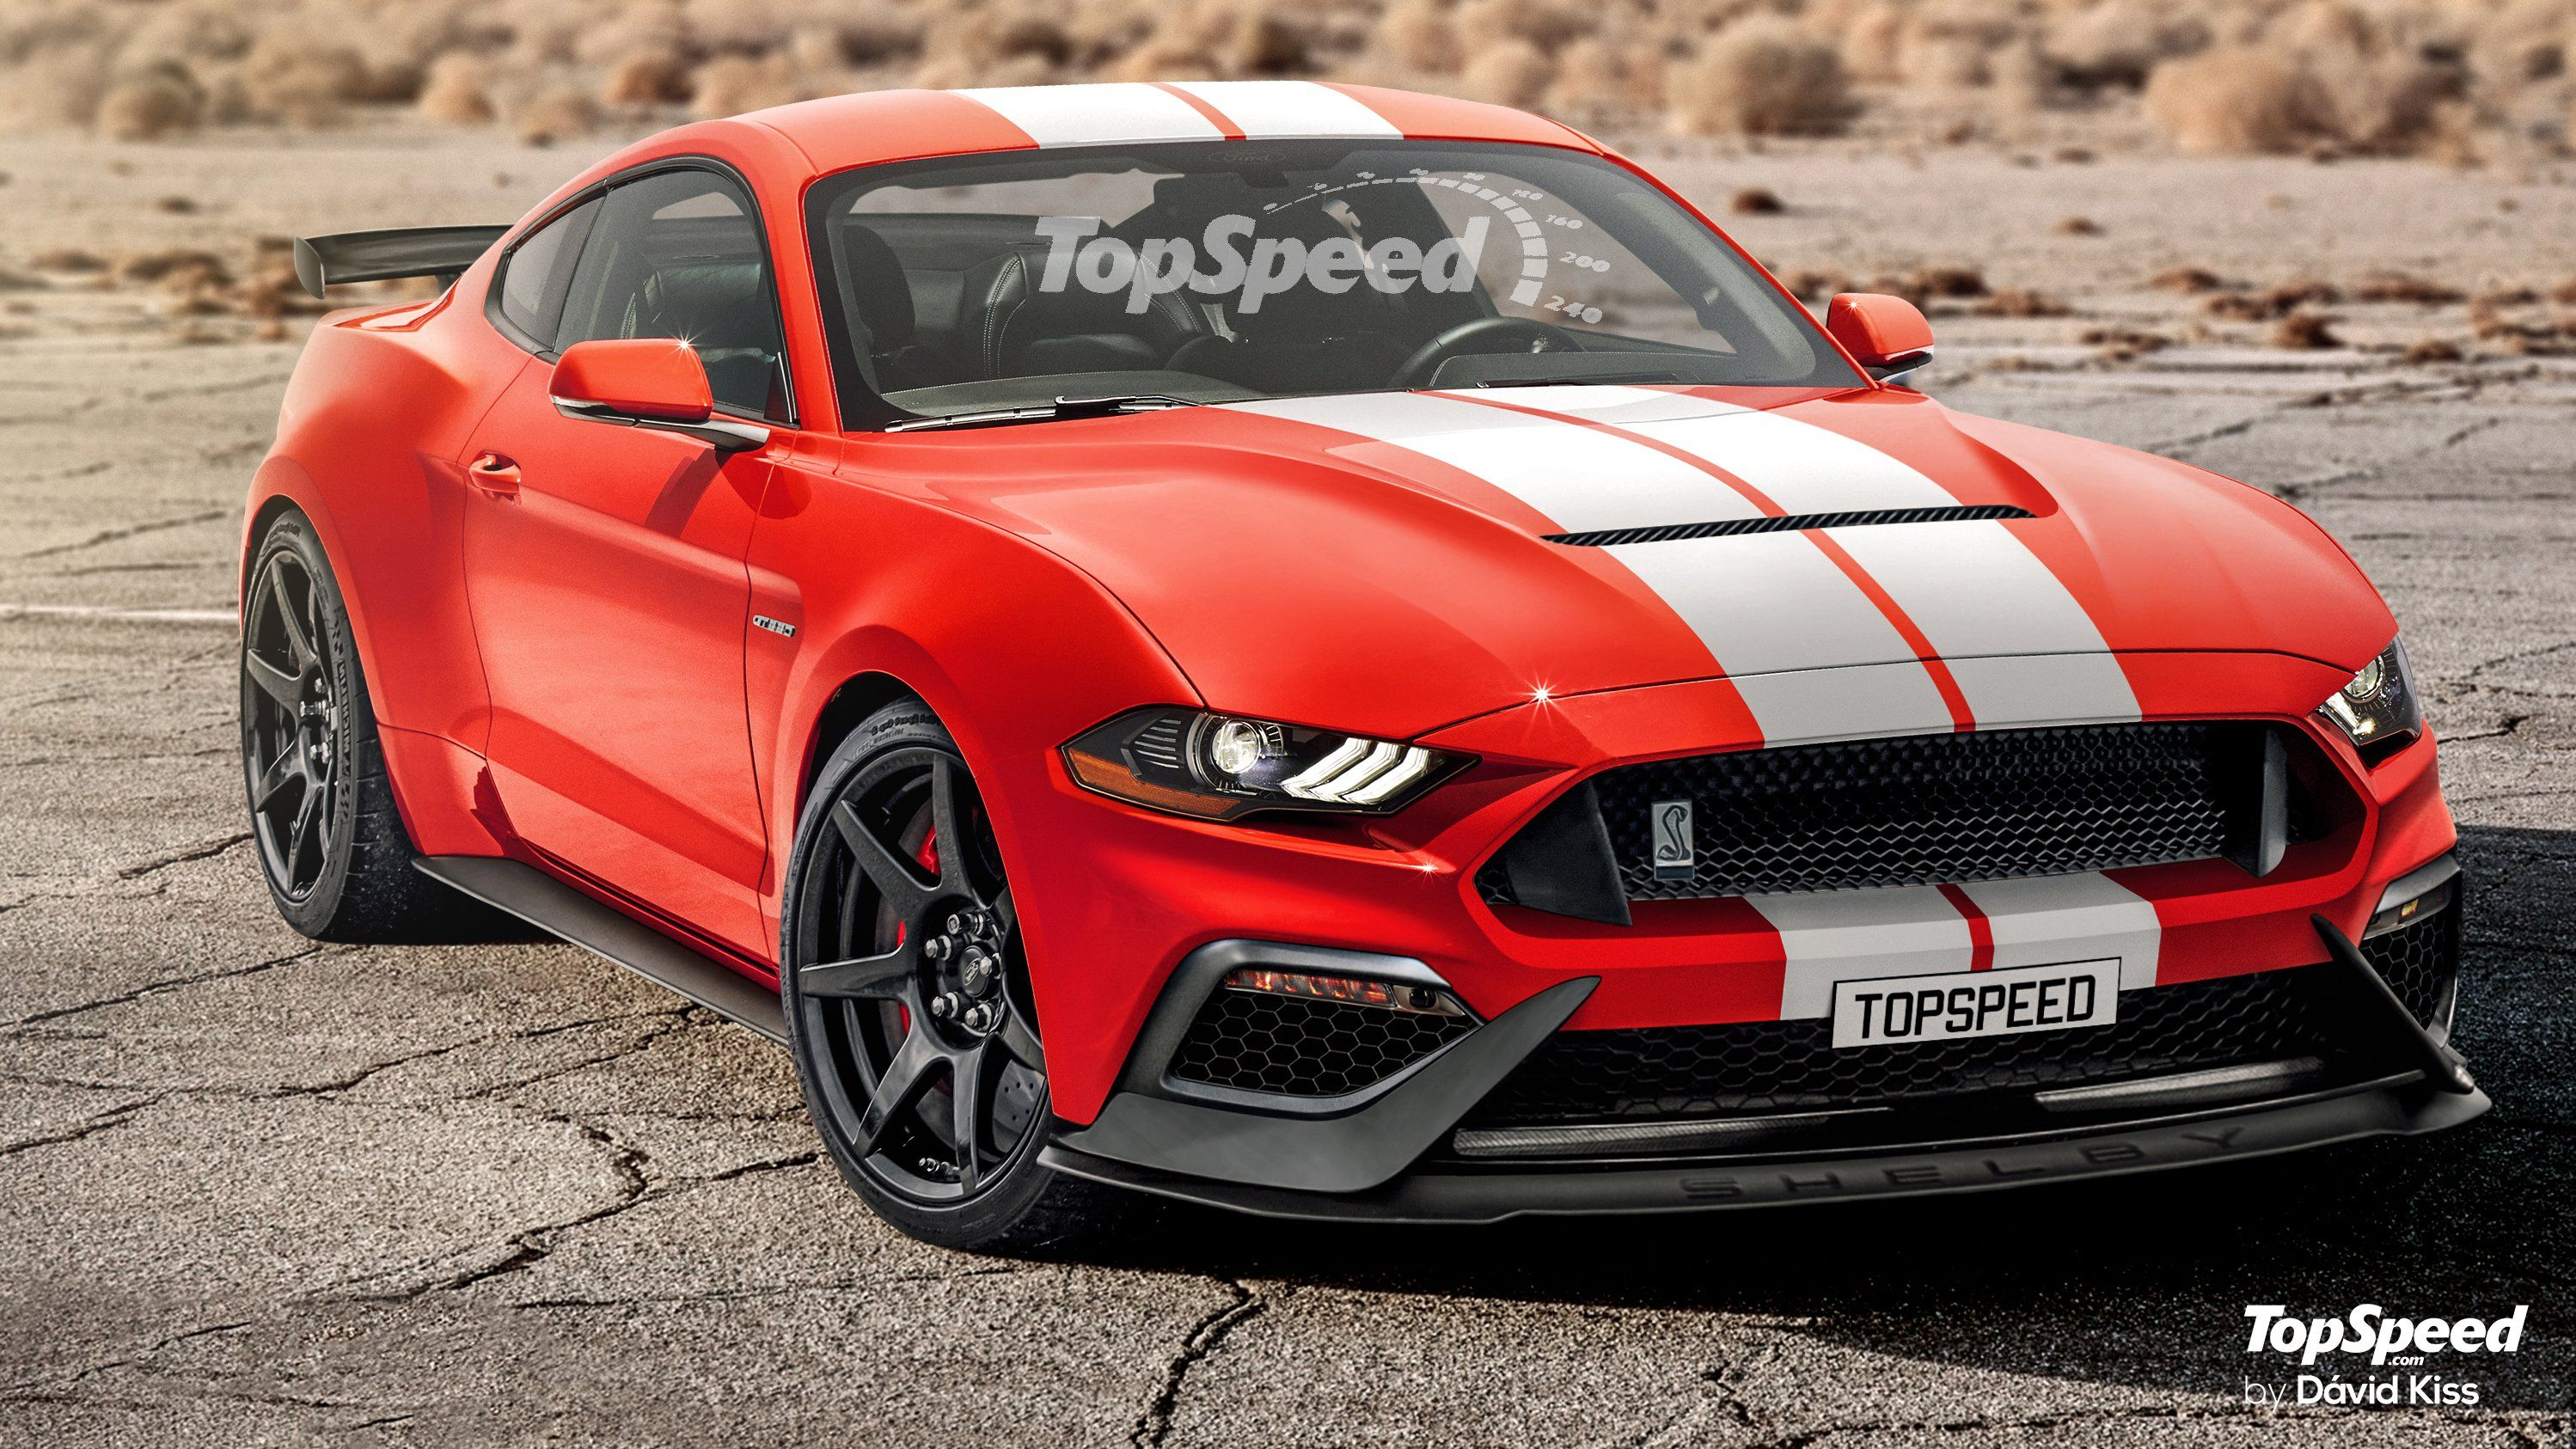 The 2020 Ford Mustang Shelby Gt500 Just Might Get A 6 Speed Manual